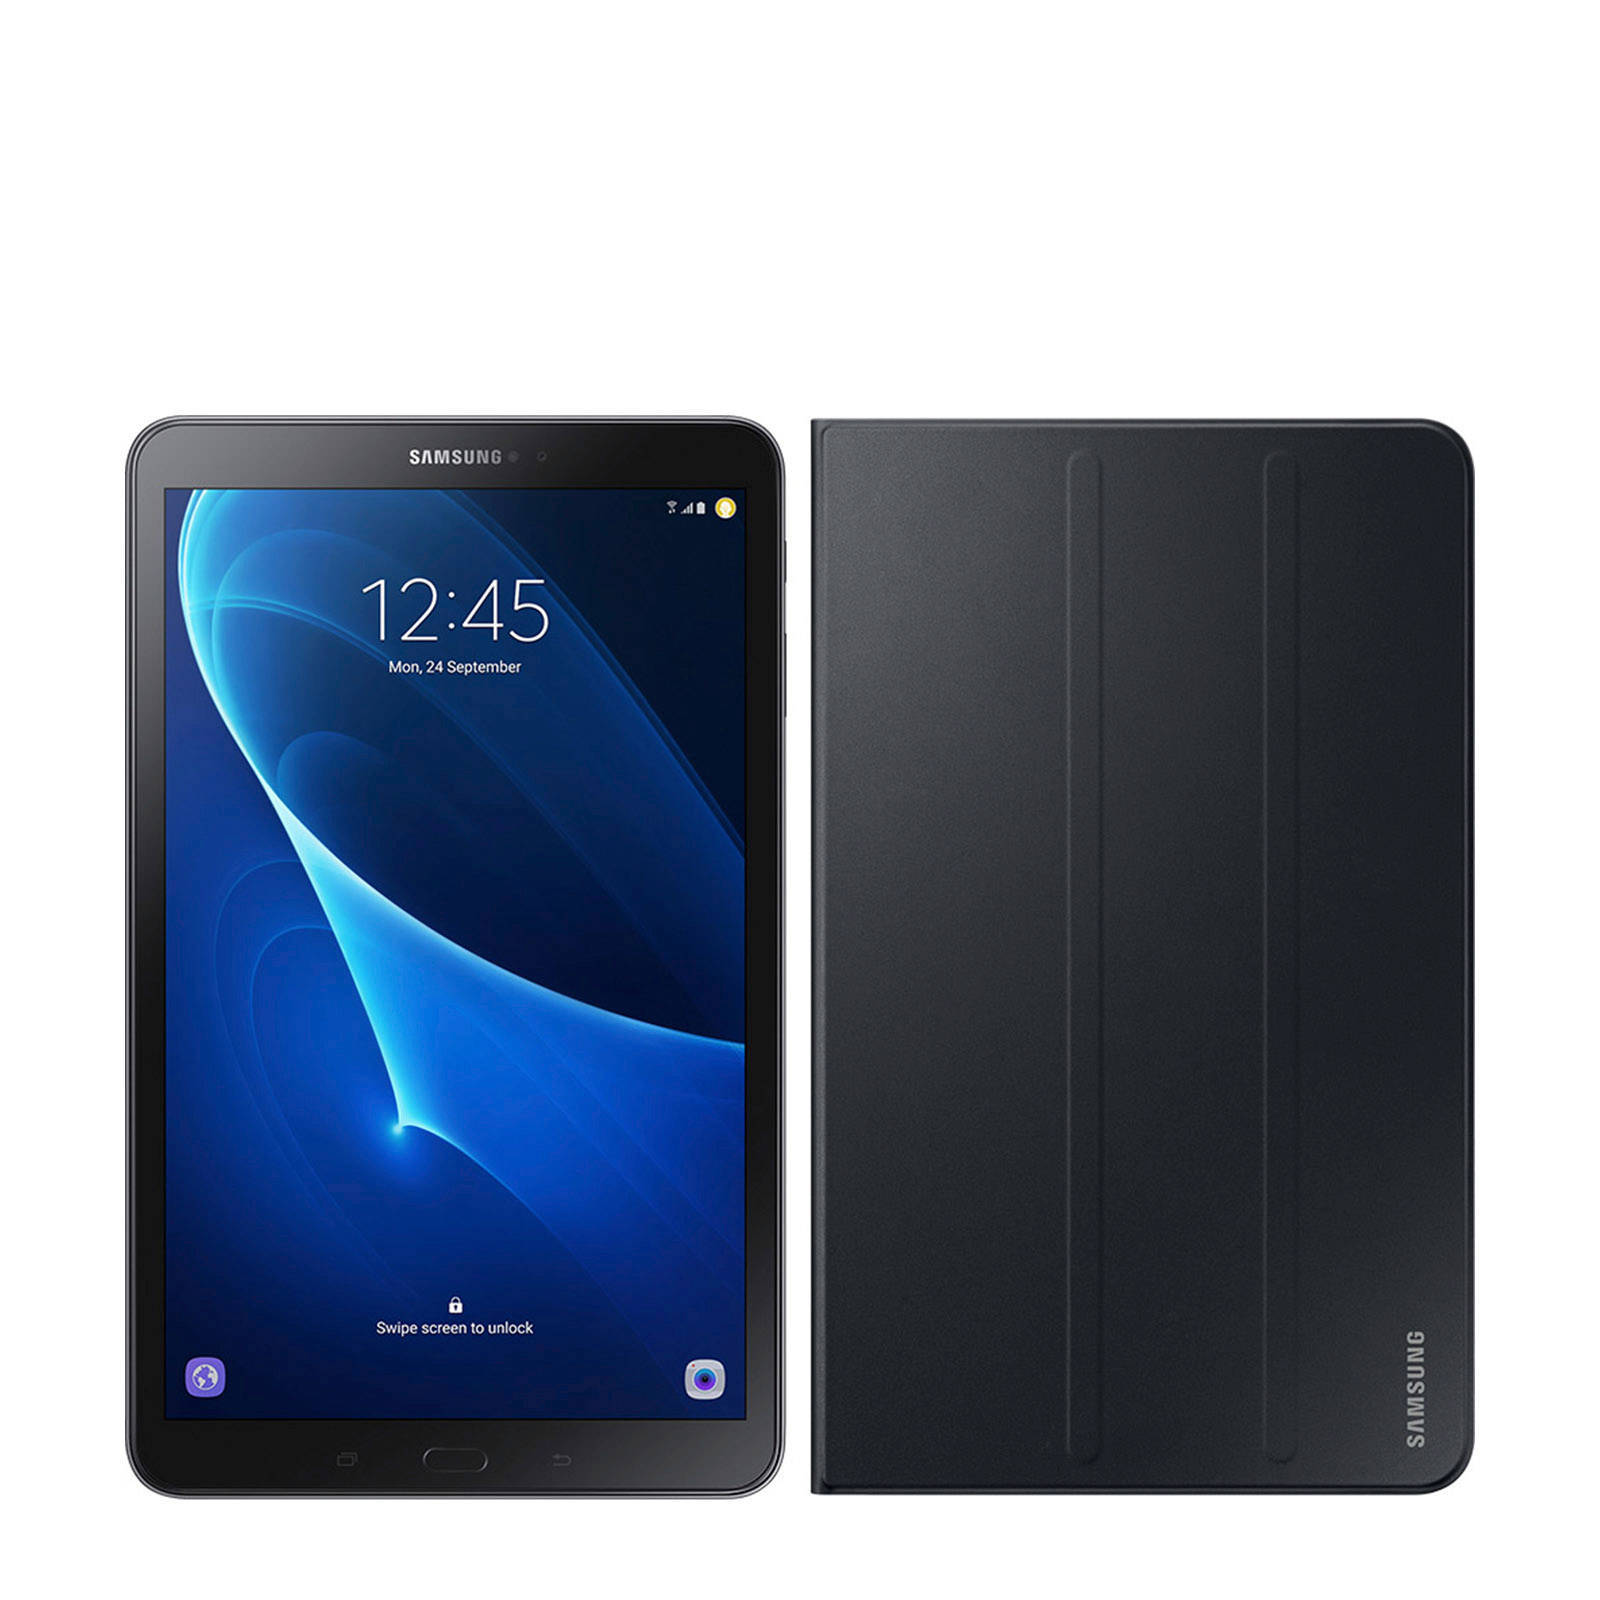 Samsung T580 32GB + HOES Galaxy Tab A 10.1 tablet 32GB